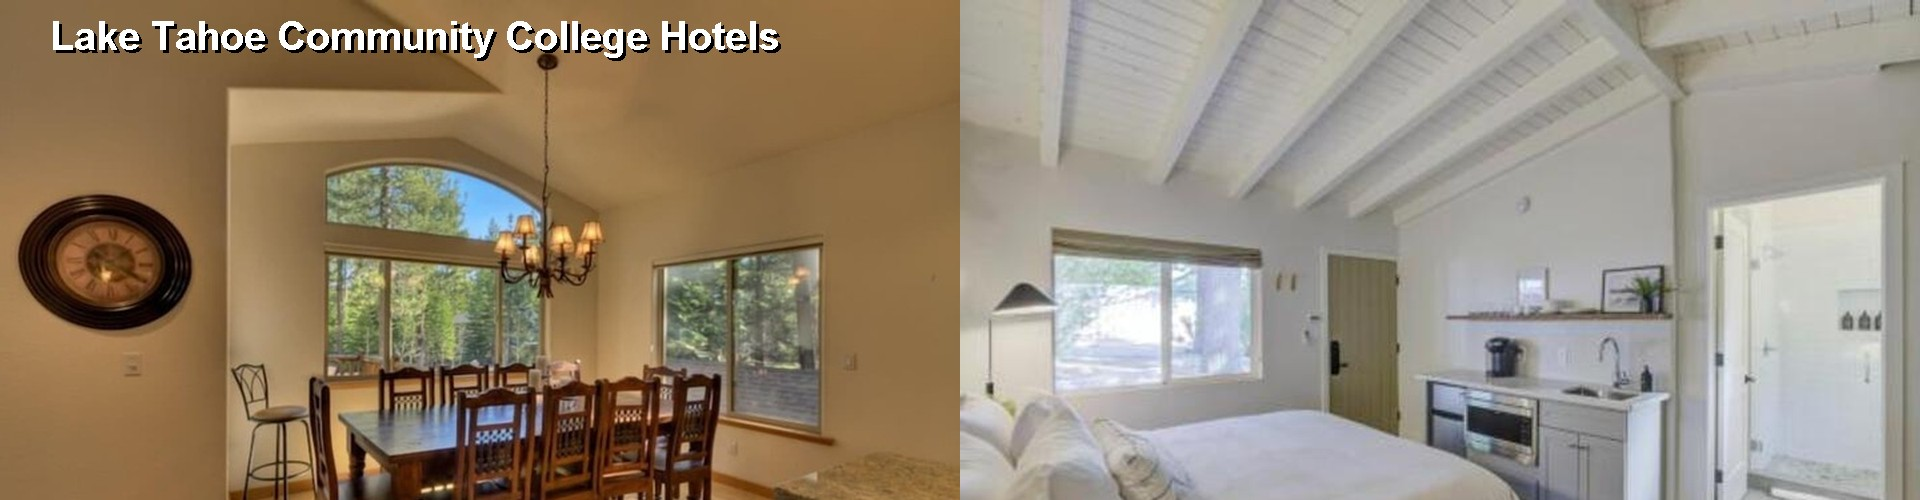 5 Best Hotels near Lake Tahoe Community College